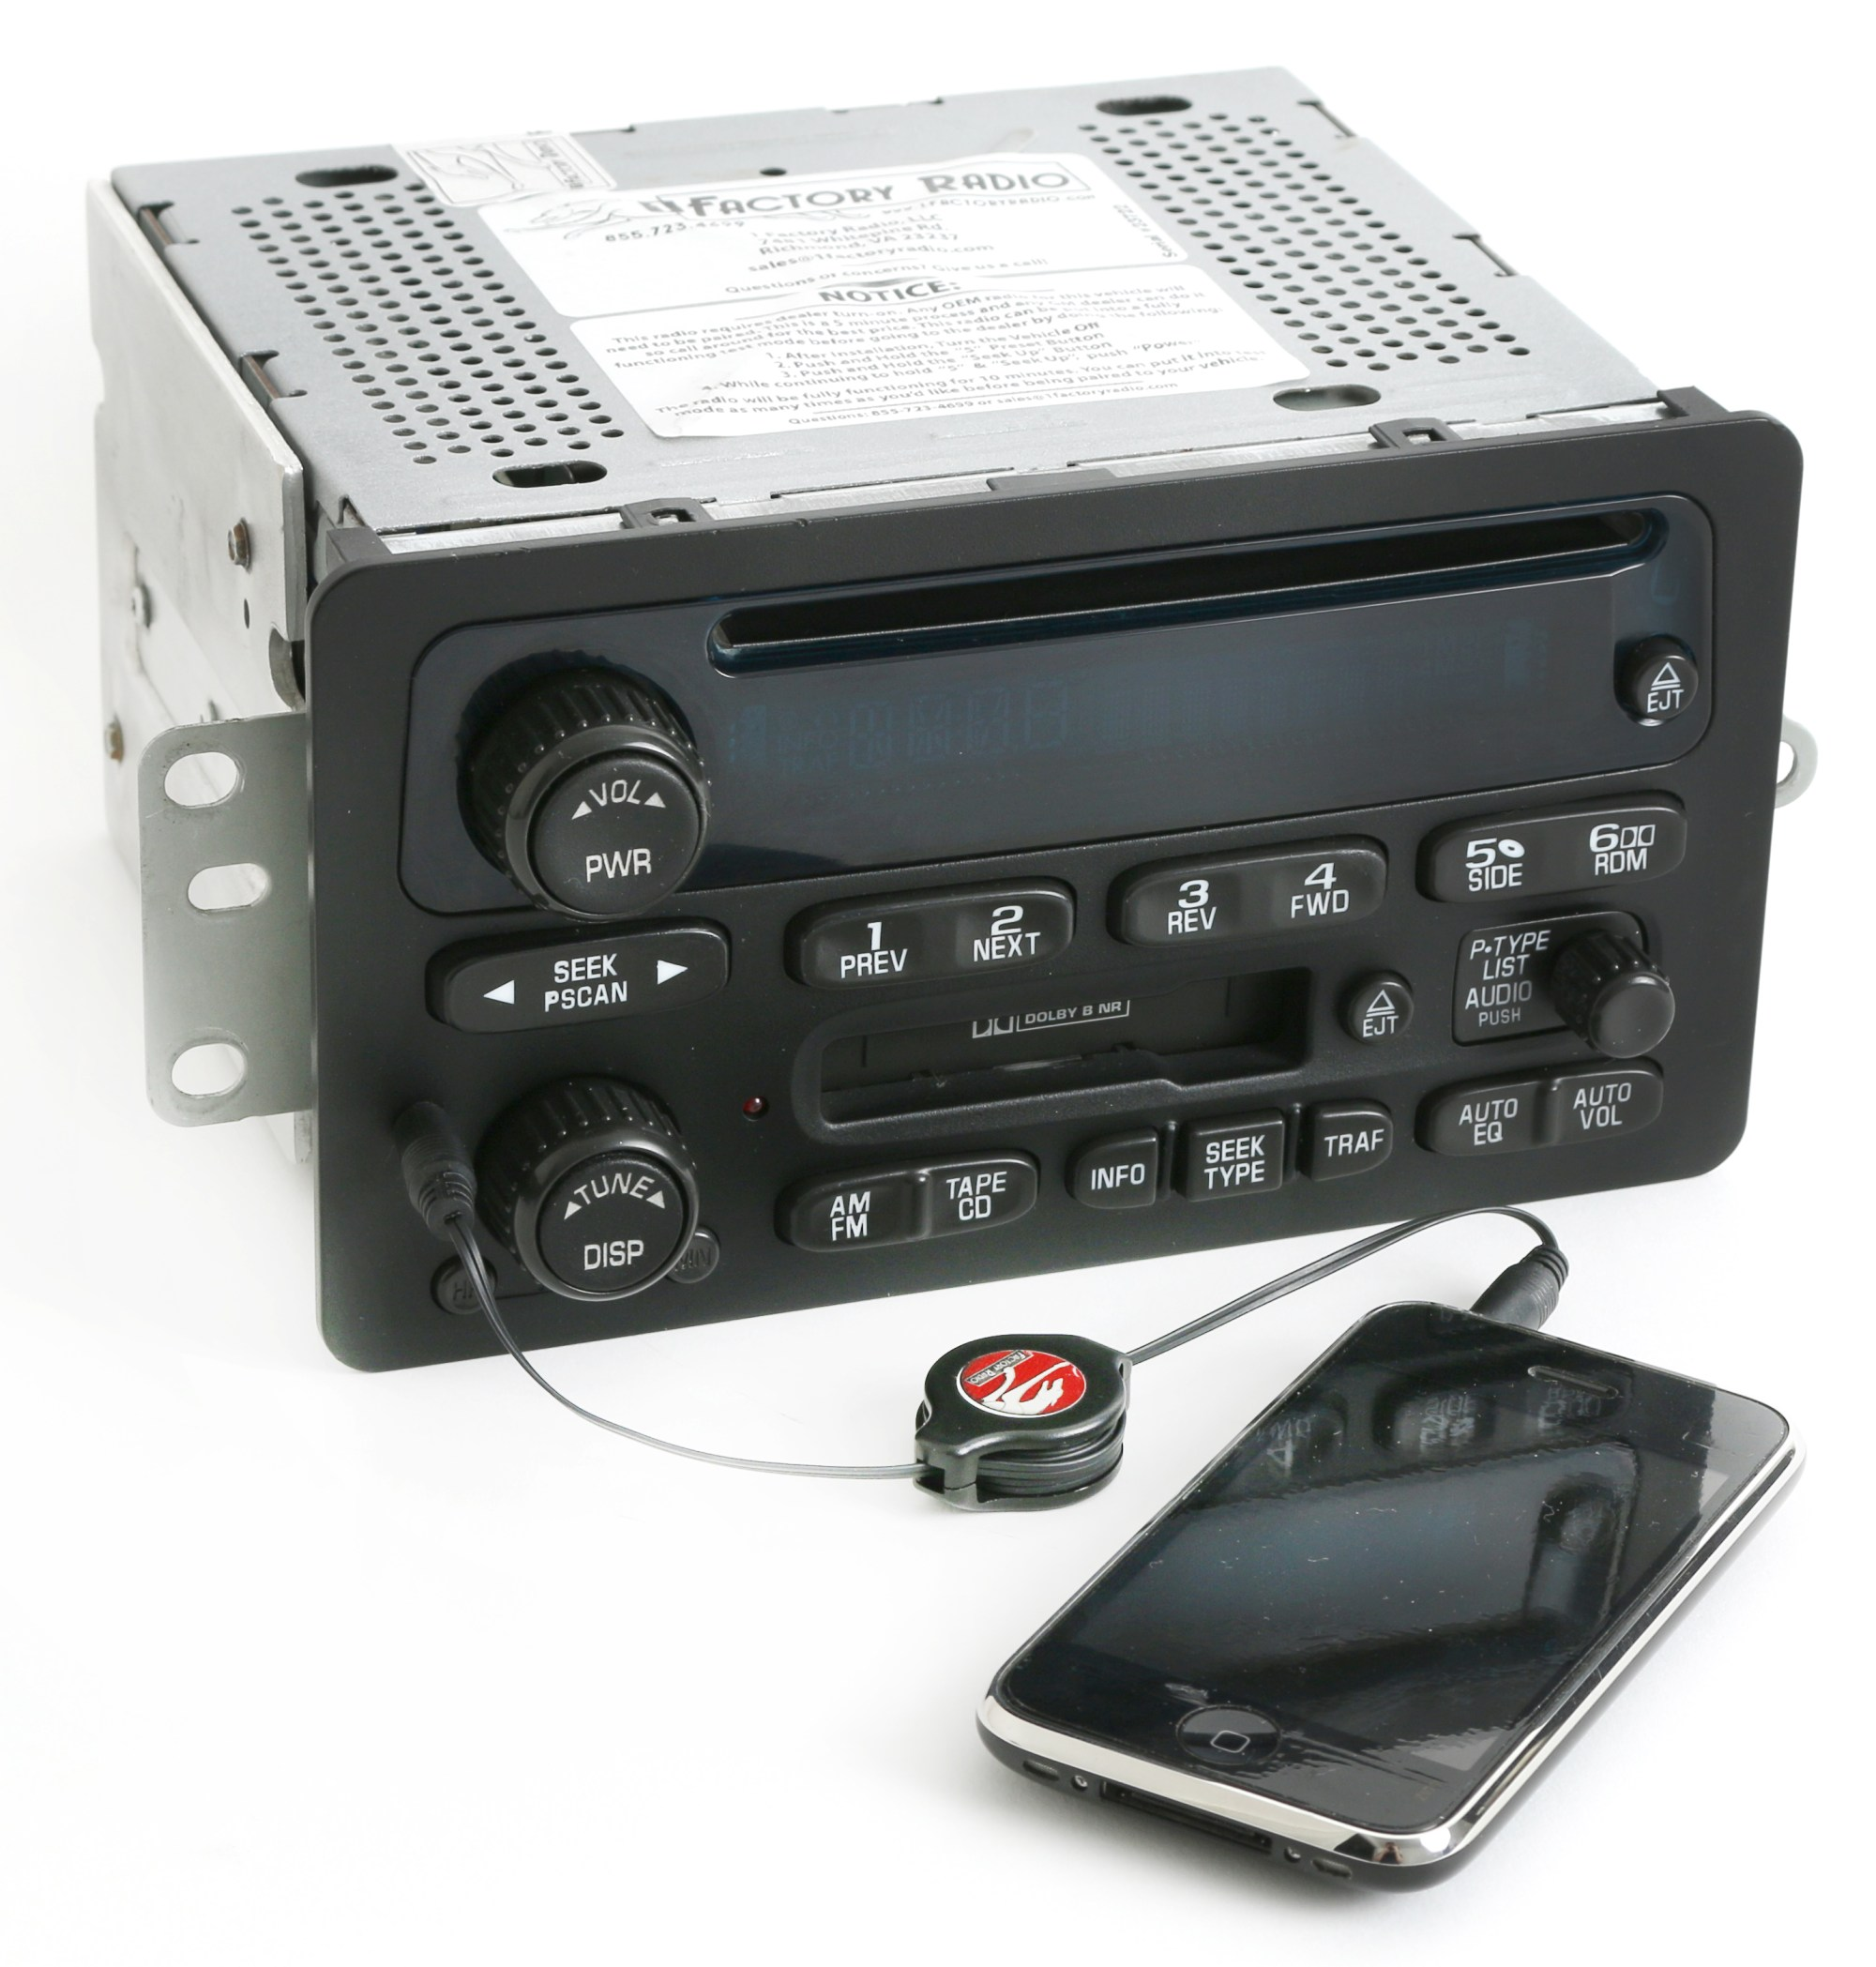 hight resolution of 2000 05 chevy monte carlo impala radio am fm cd cassette w aux input 09394159 refurbished walmart com